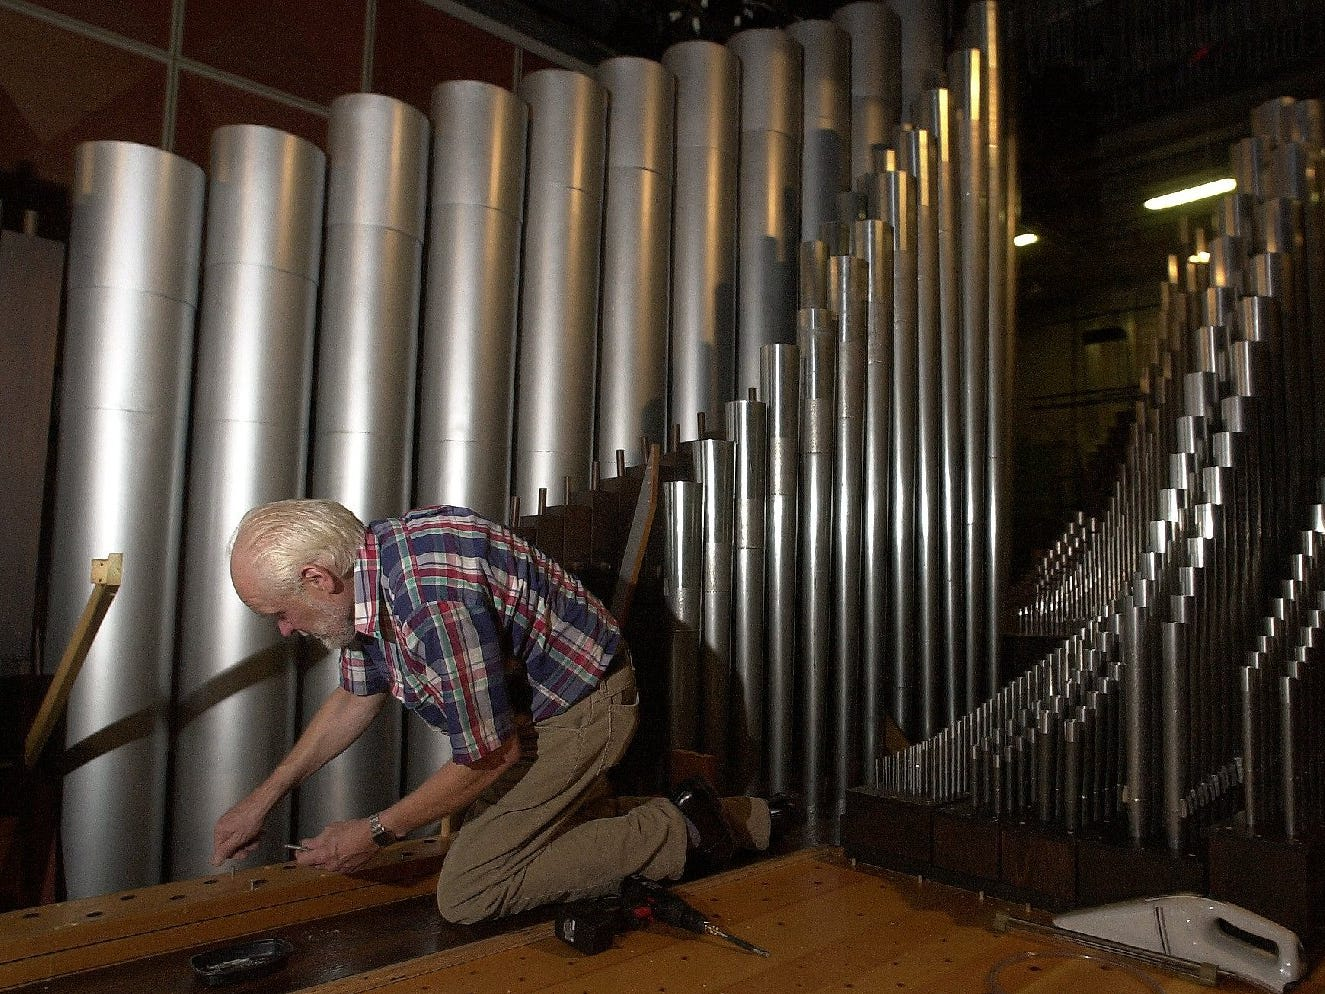 Organ technician Bill Hansen of Glendale, prepares to re-install one of roughly 3,000 pipes back into the pipe organ after cleaning it. The organ sits on a elevator floor under the Uihlein Hall floor and can lowered or raised for performances or cleaning.